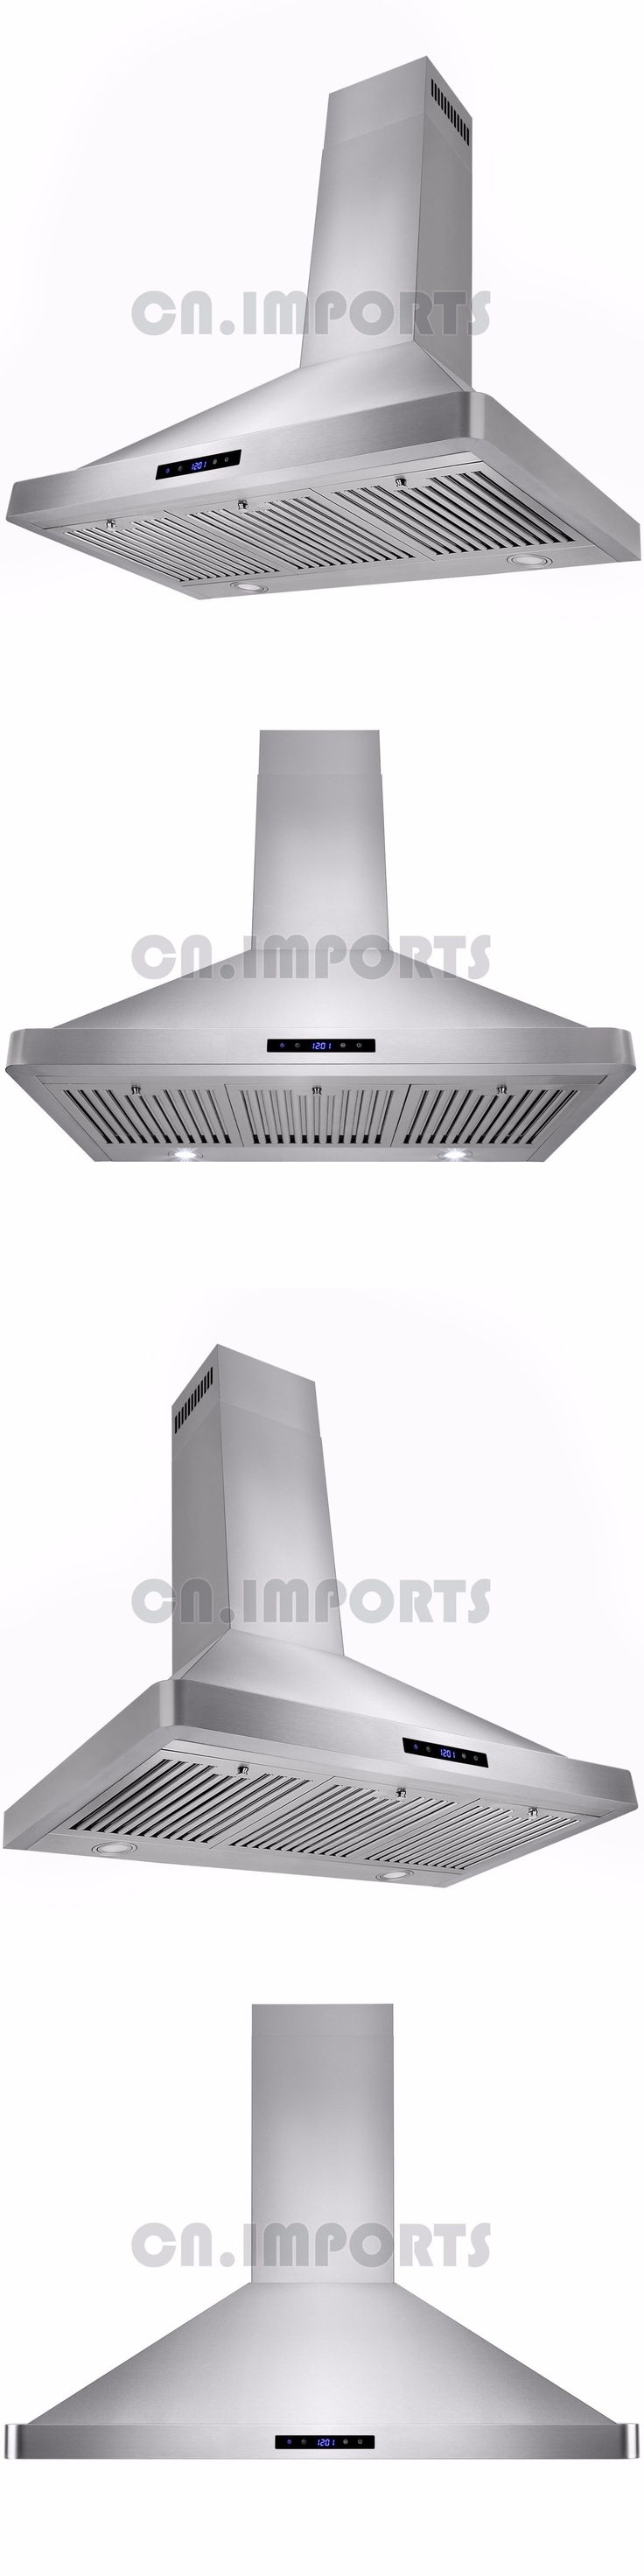 Range Hoods 71253: 36 Stainless Steel Kitchen Powerful Wall Mount Range Hood Vent Touch Control -> BUY IT NOW ONLY: $159.99 on eBay!